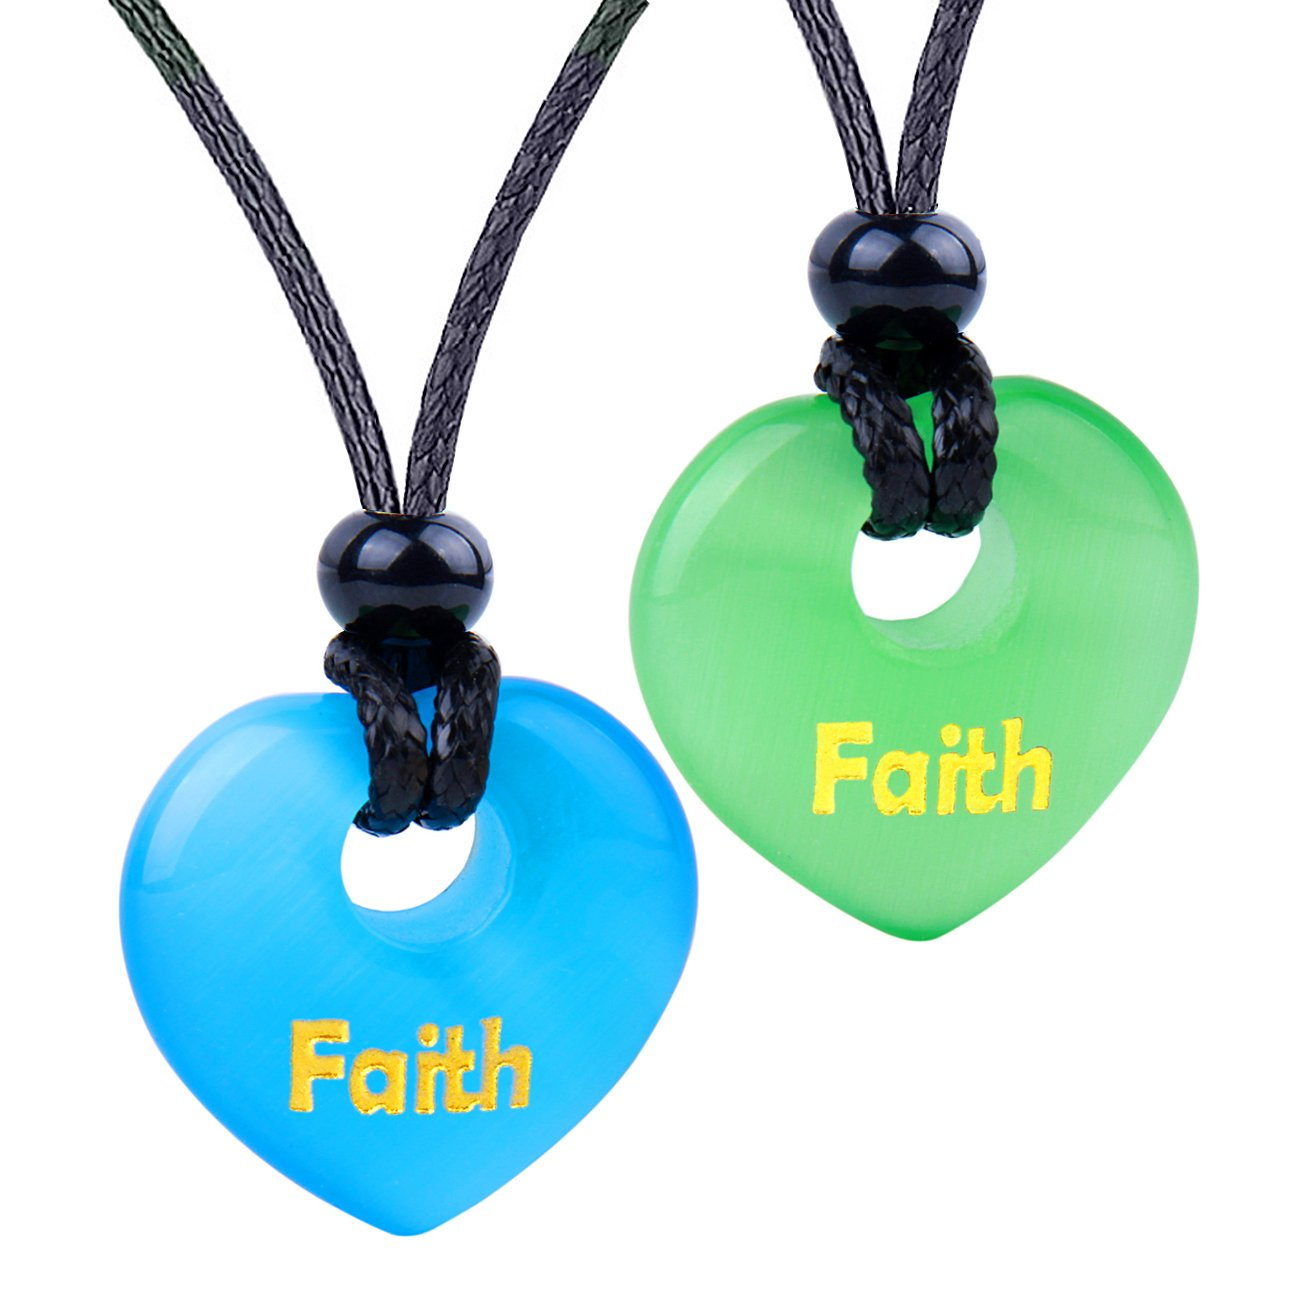 Inspirational Heart Donut Amulets Faith Love Powers Couples BFF Blue Green Simulated Cats Eye Necklaces